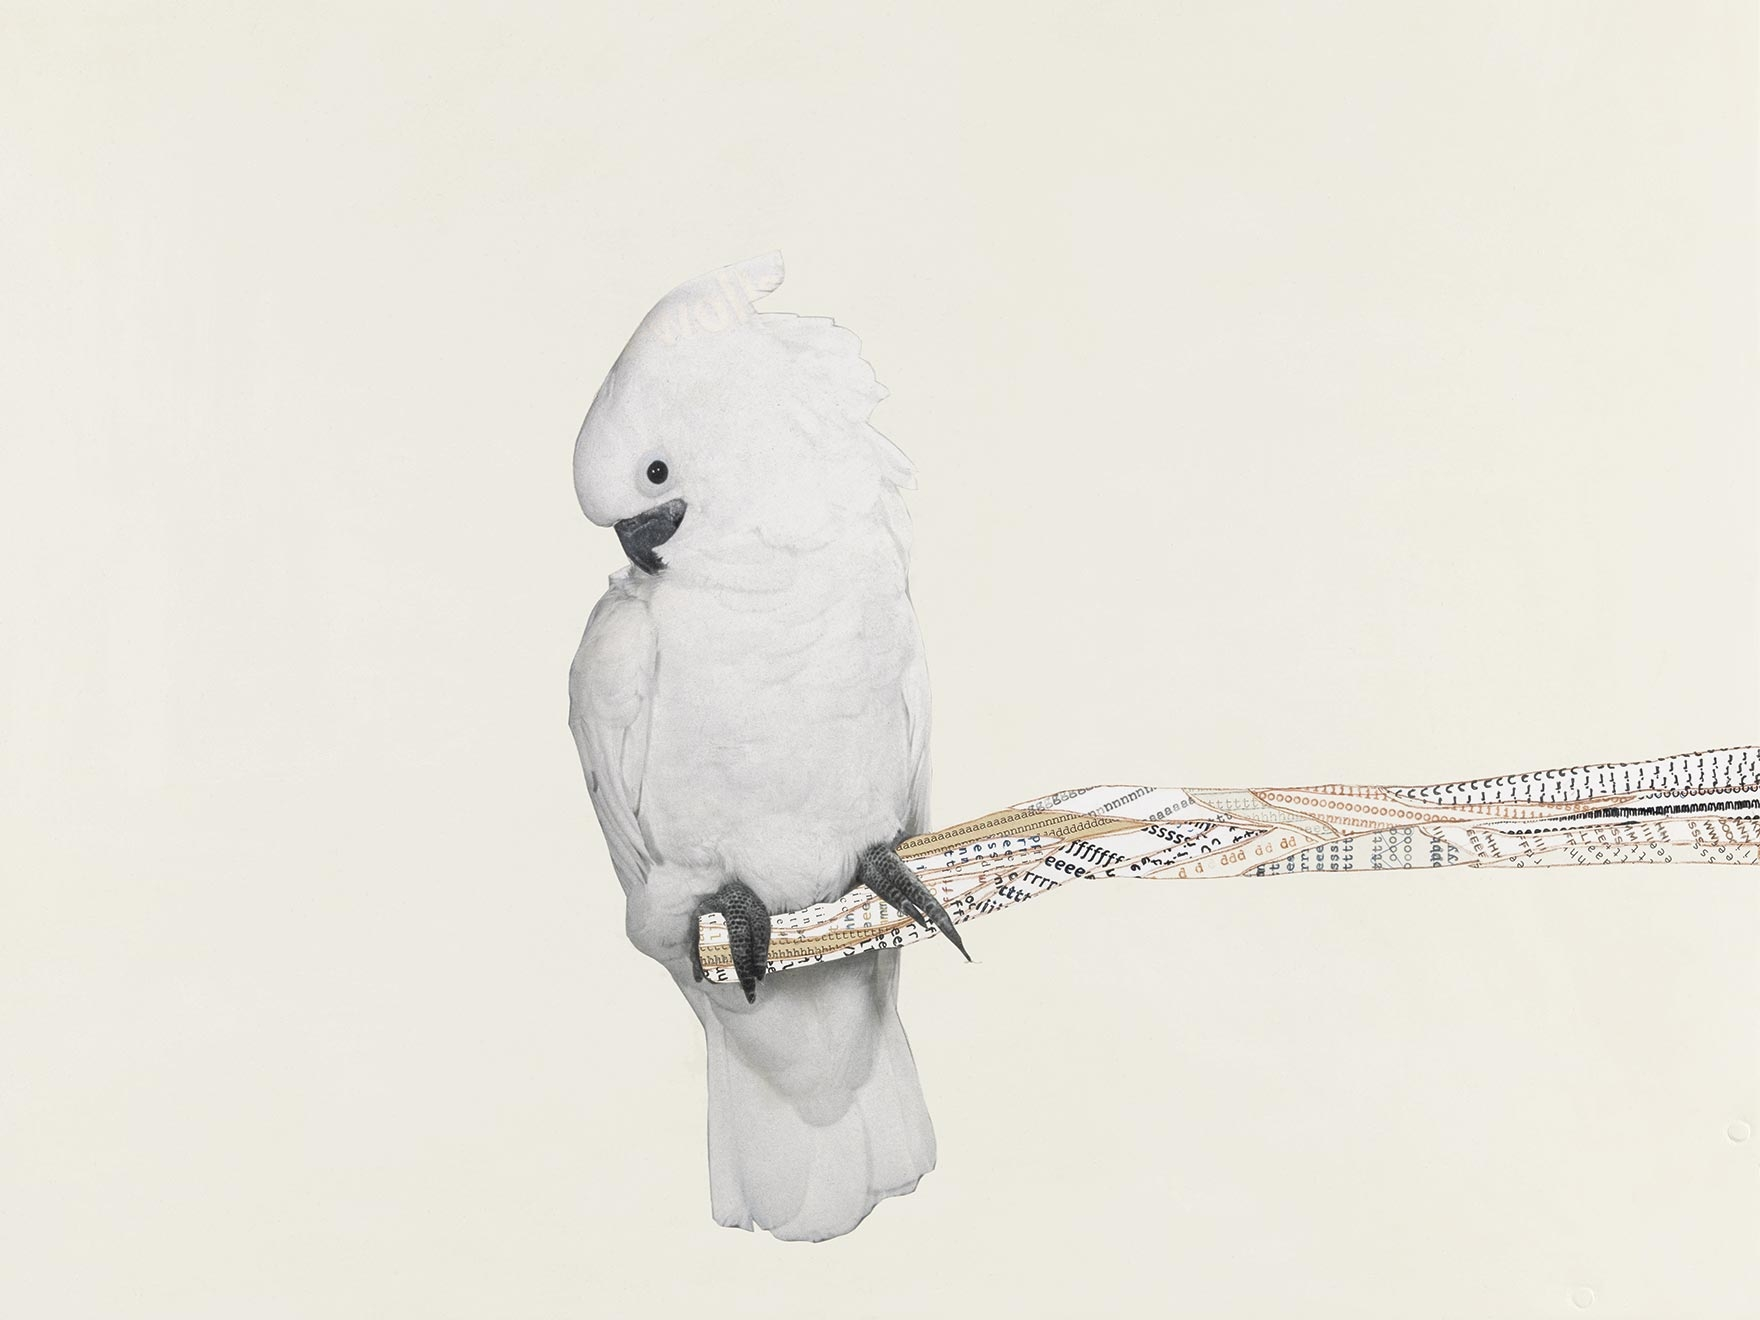 Collage of a cockatoo on a branch of text